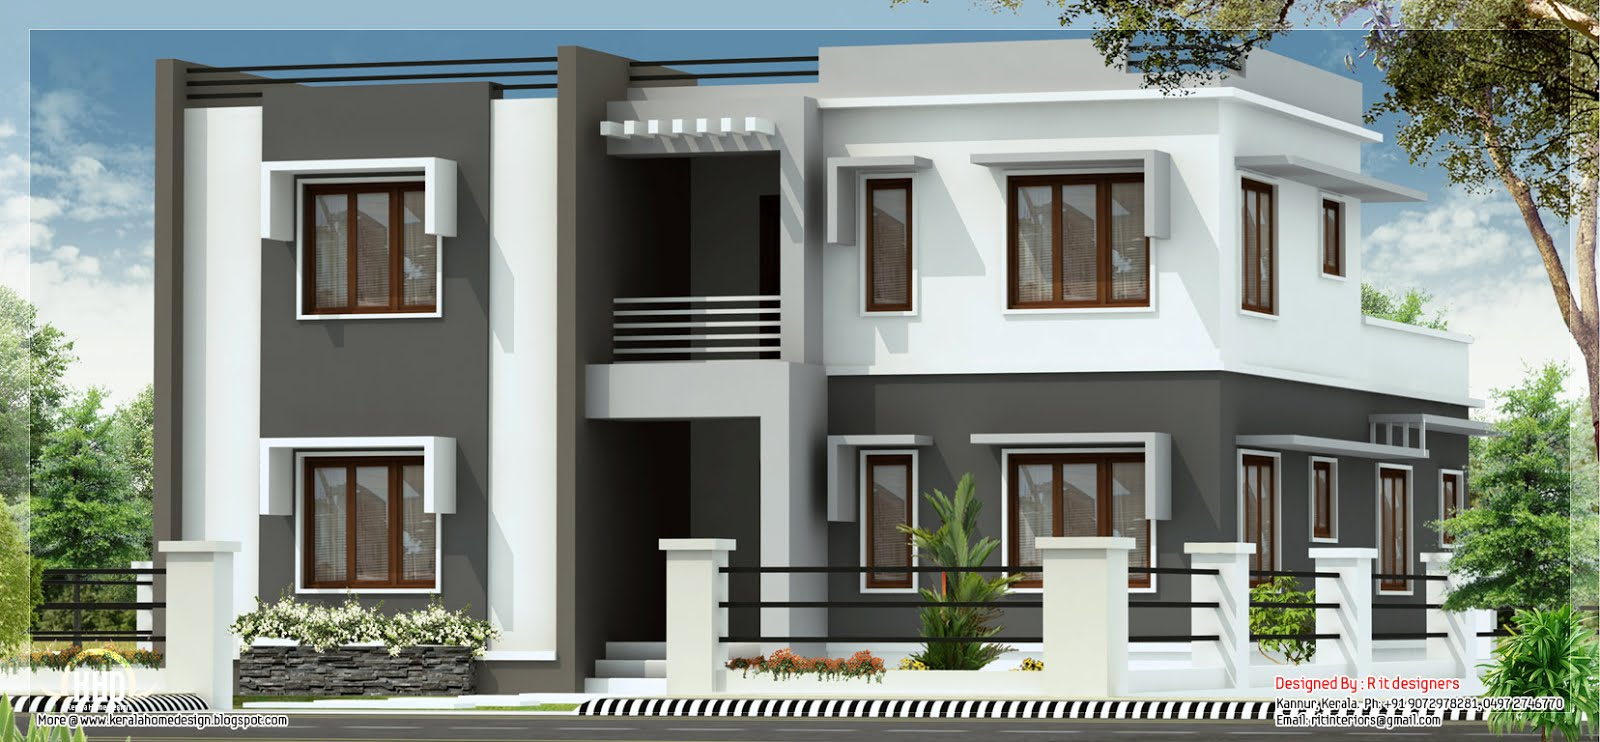 Wide flat roof 3 bedroom home design kerala home design for Home decor 3 room flat